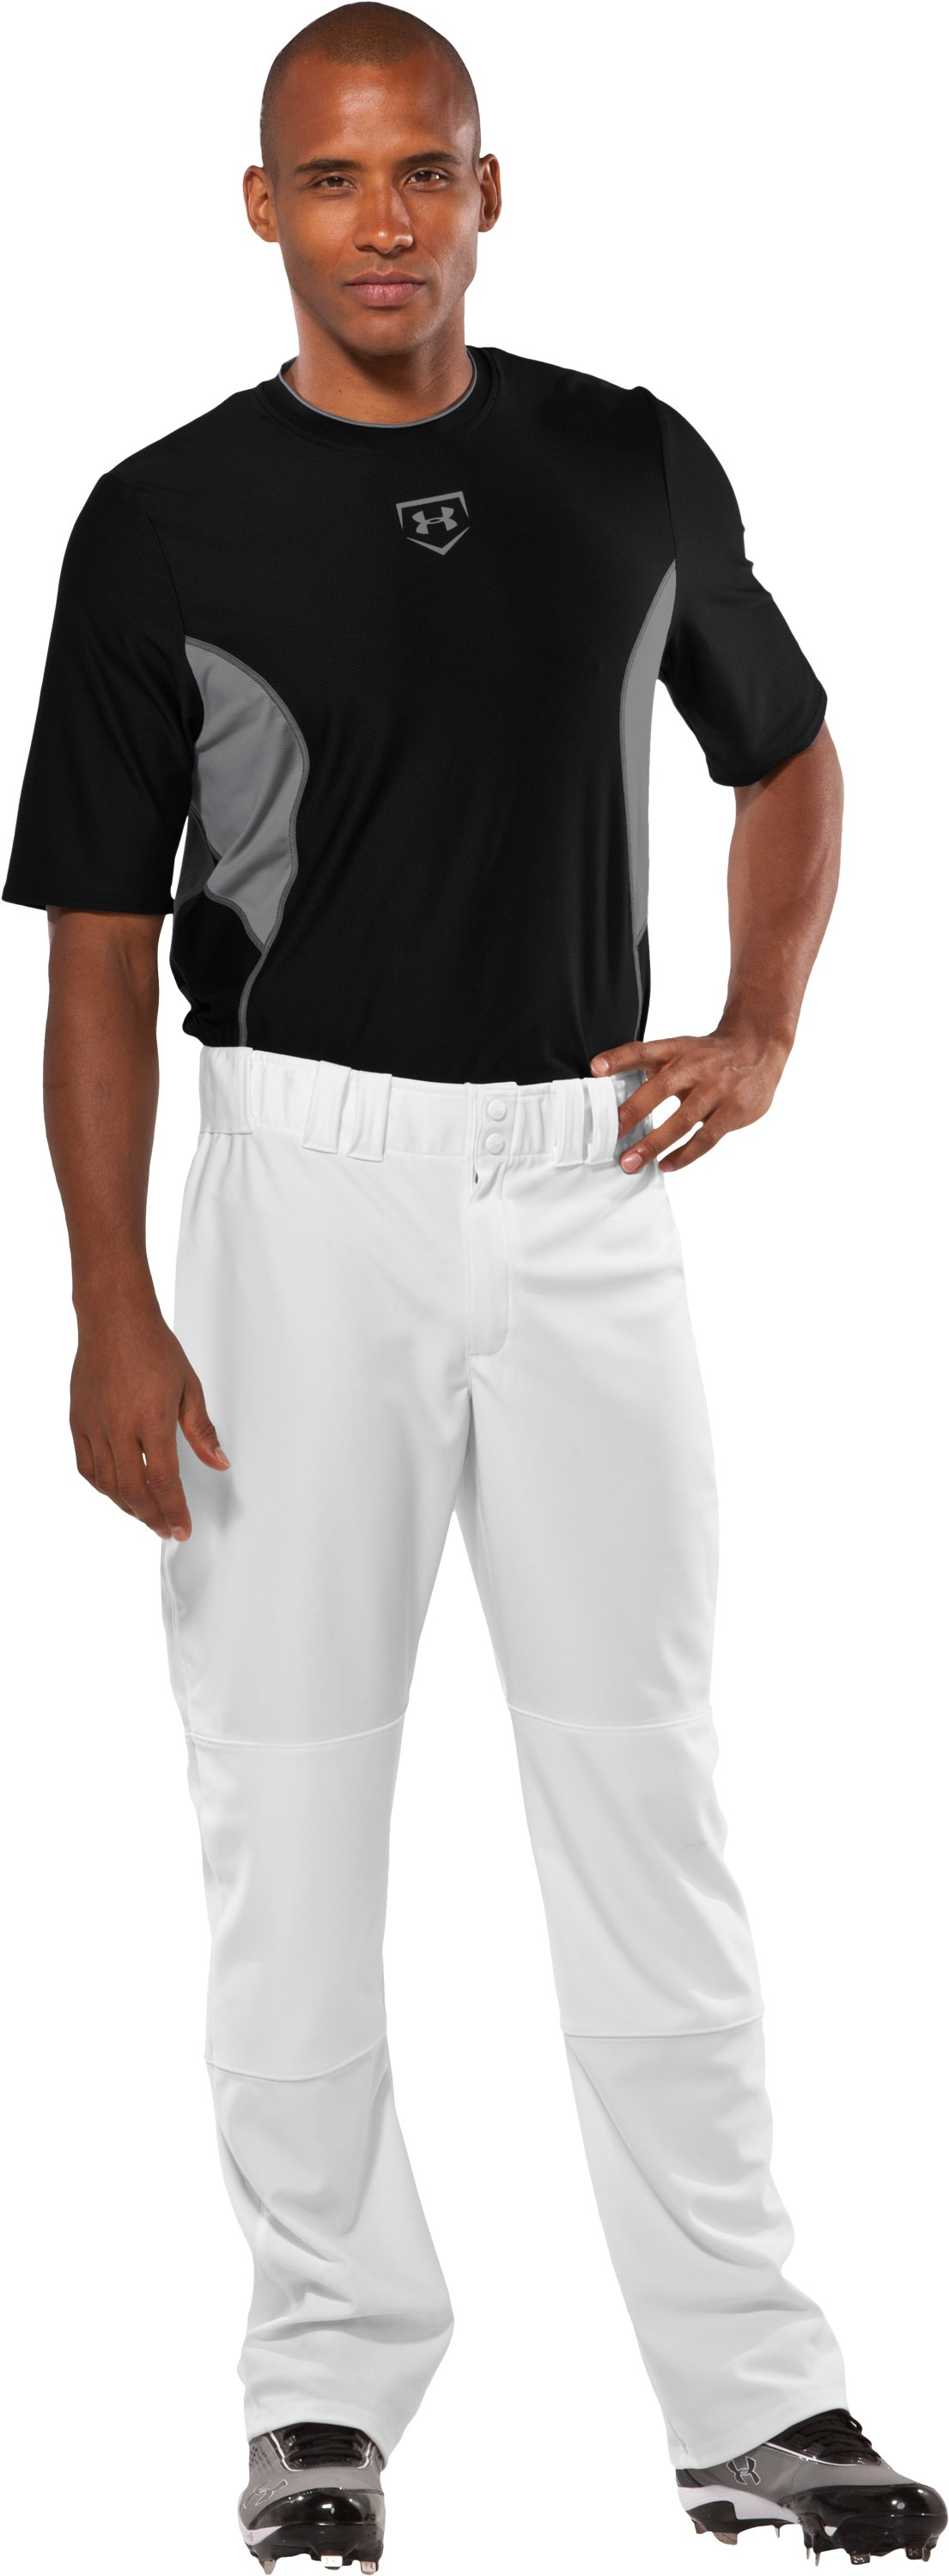 "Men's Huntington II 33"" Baseball Pants, White, zoomed image"